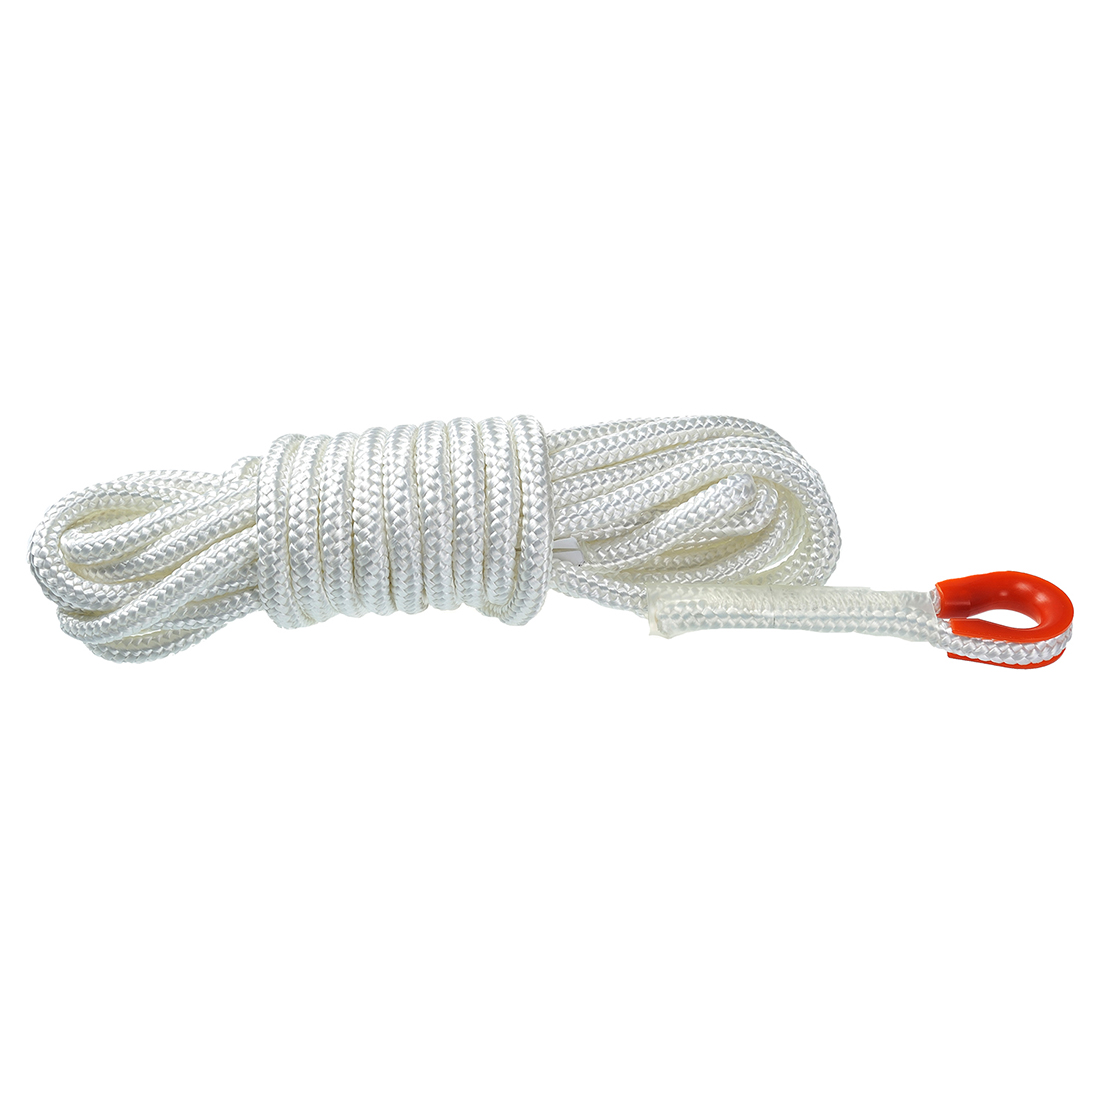 Portwest 10 Metre Static Rope